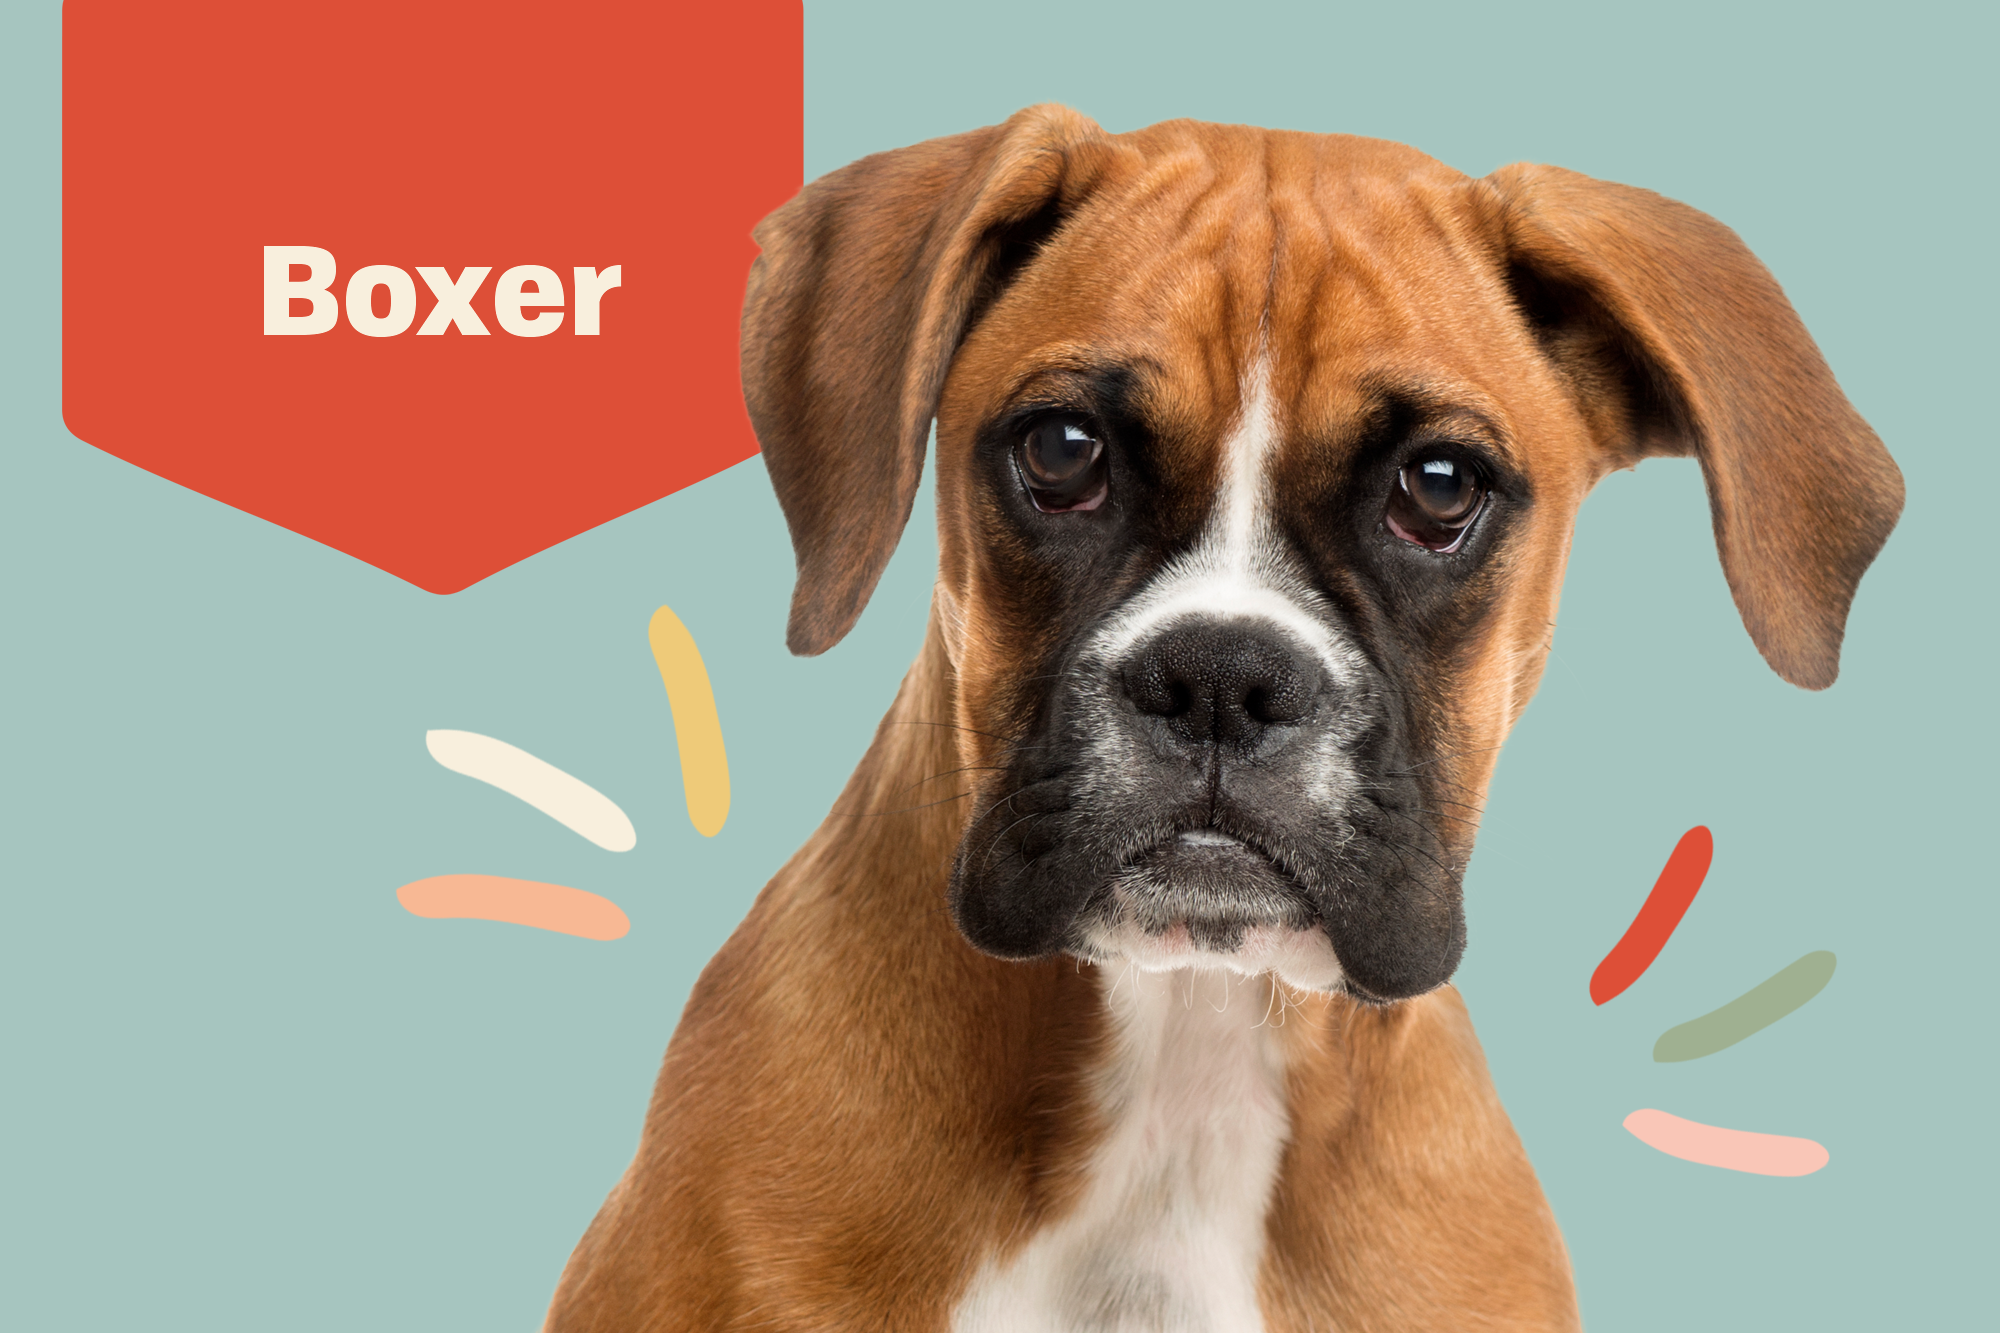 Boxer Breed Photo